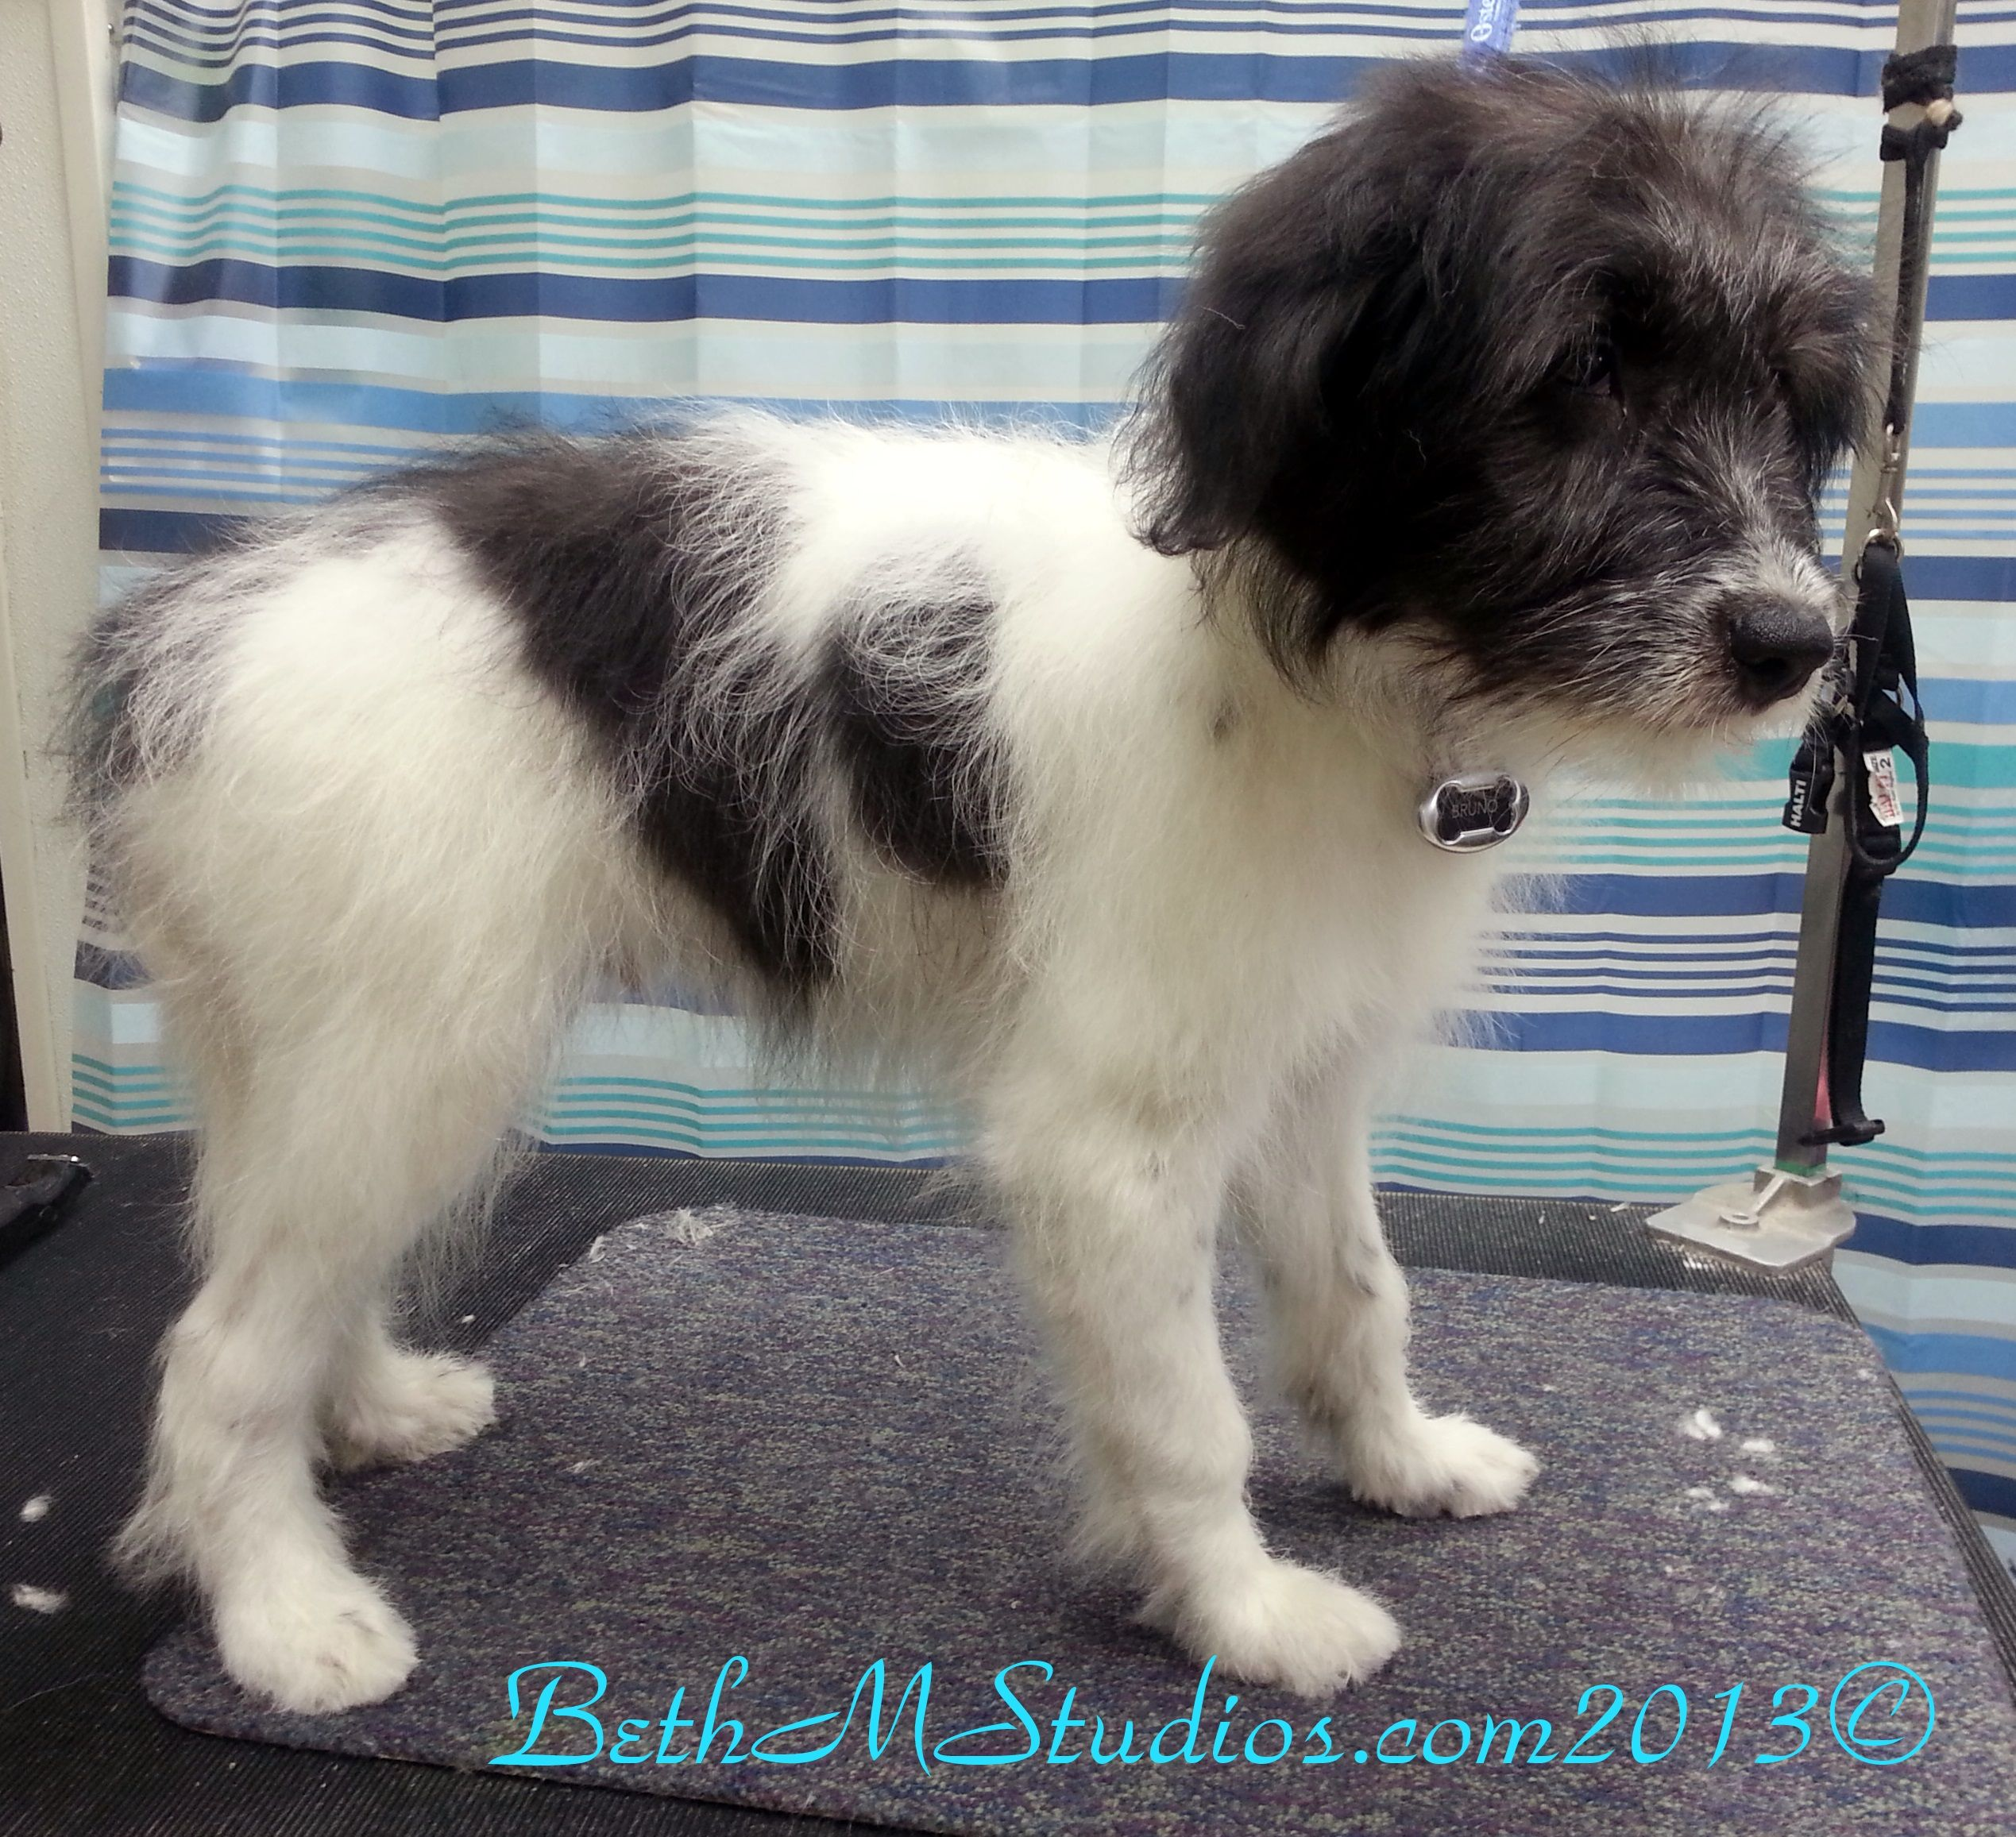 Bruno 4 Month Old Border Collie Poodle Mix First Full Bath And Brush Http Www Gooddogsspaandstudio Com Border Collie Poodle Mix Puppies Dog Spa